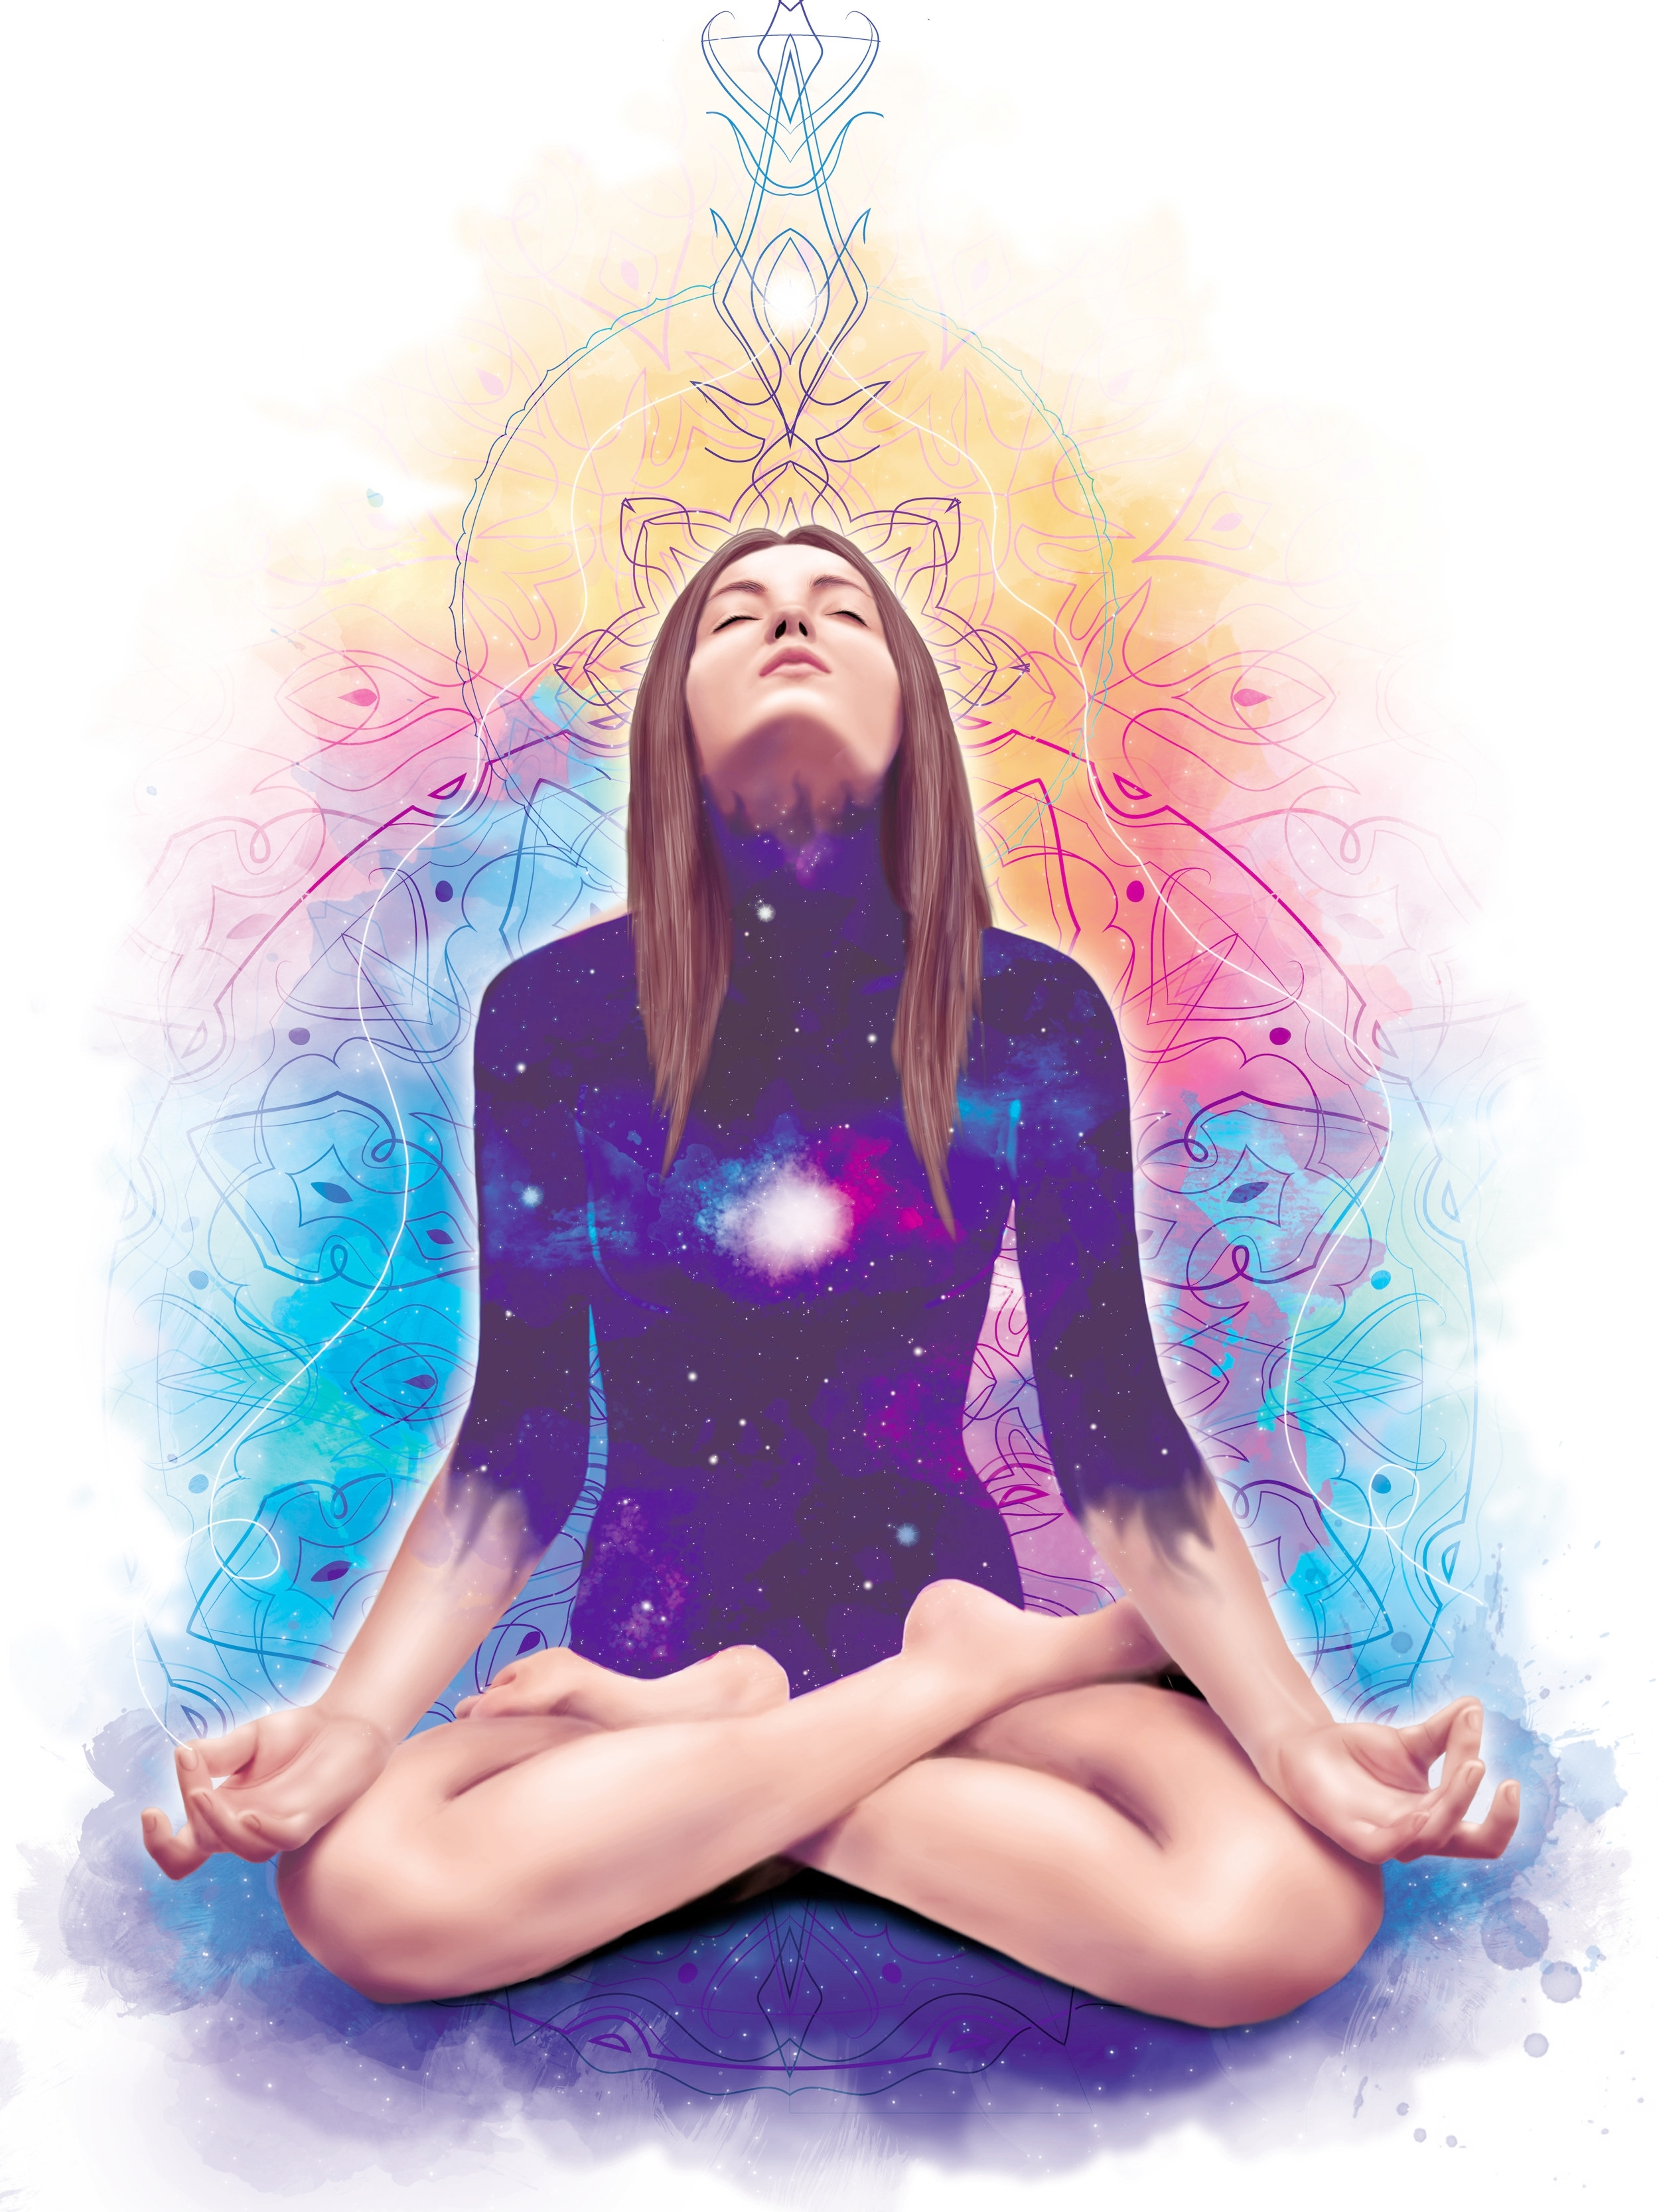 feel Supported, Empowered, with deeper soul clarity - Personal Readings + Coaching Sessions